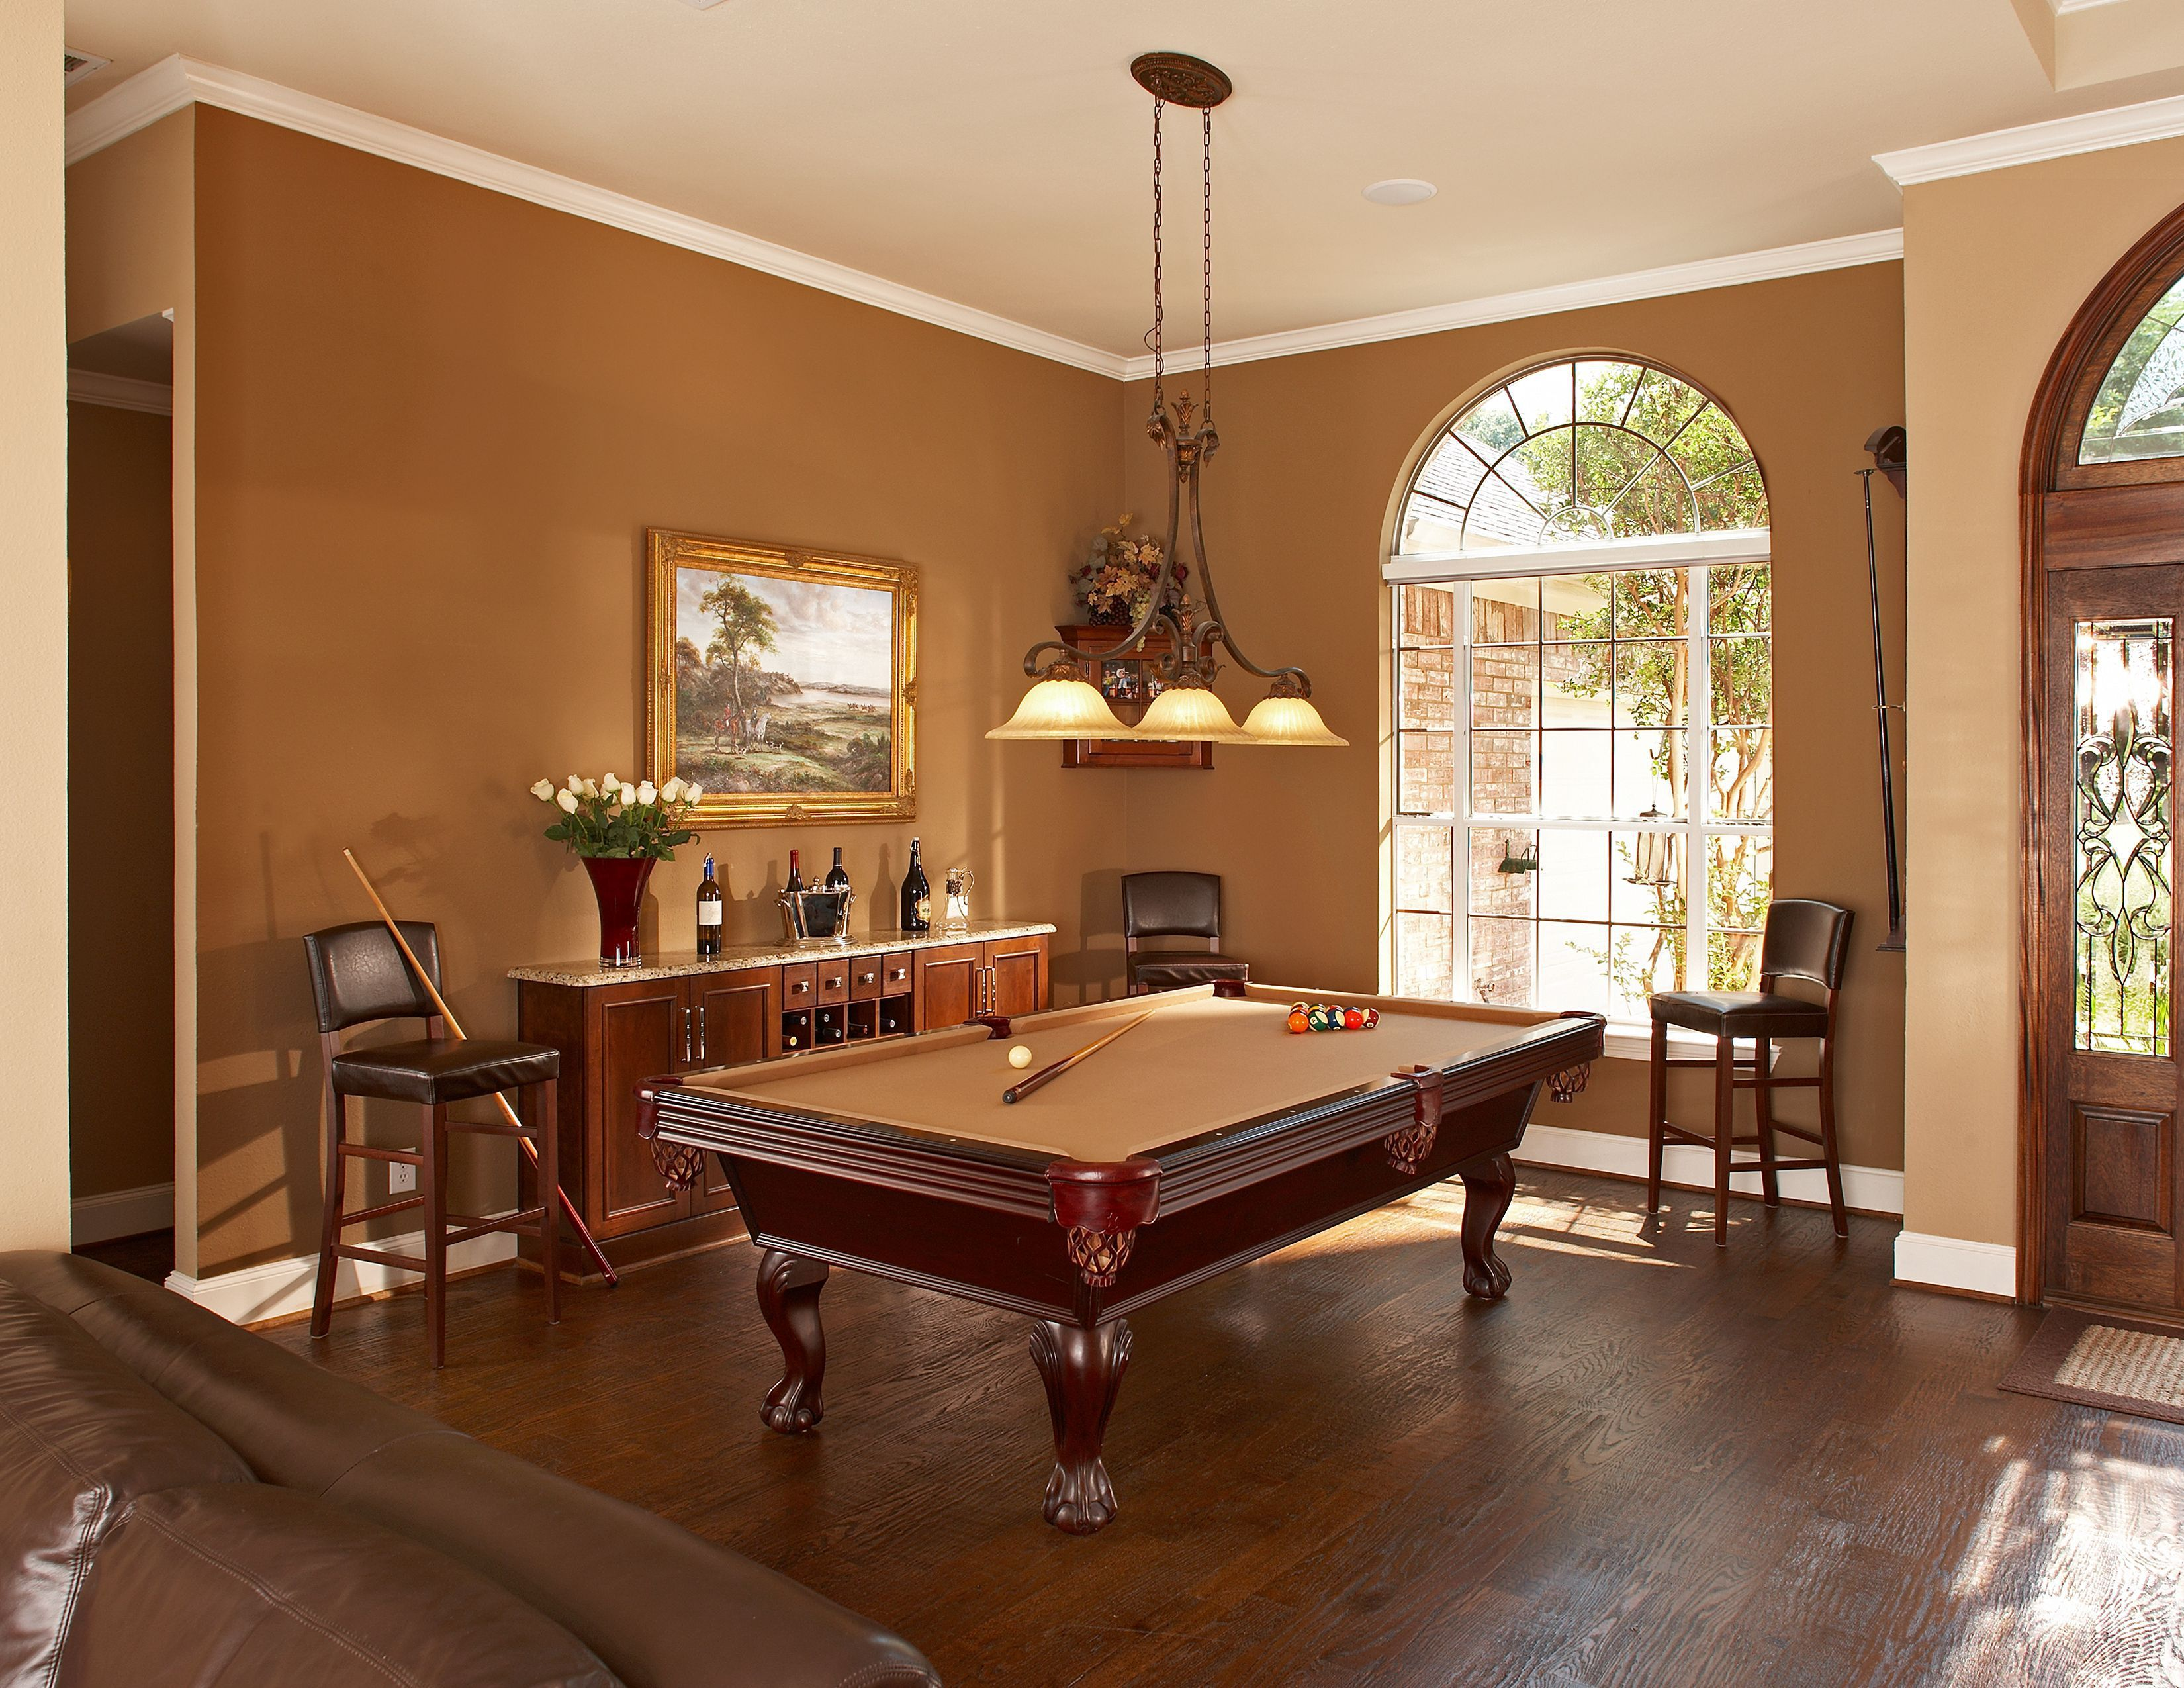 To create a space in your home for your teens to get away with their friends, start with a list of game room ideas. Home Addition Designs | Photo Gallery | Servant Remodeling ...